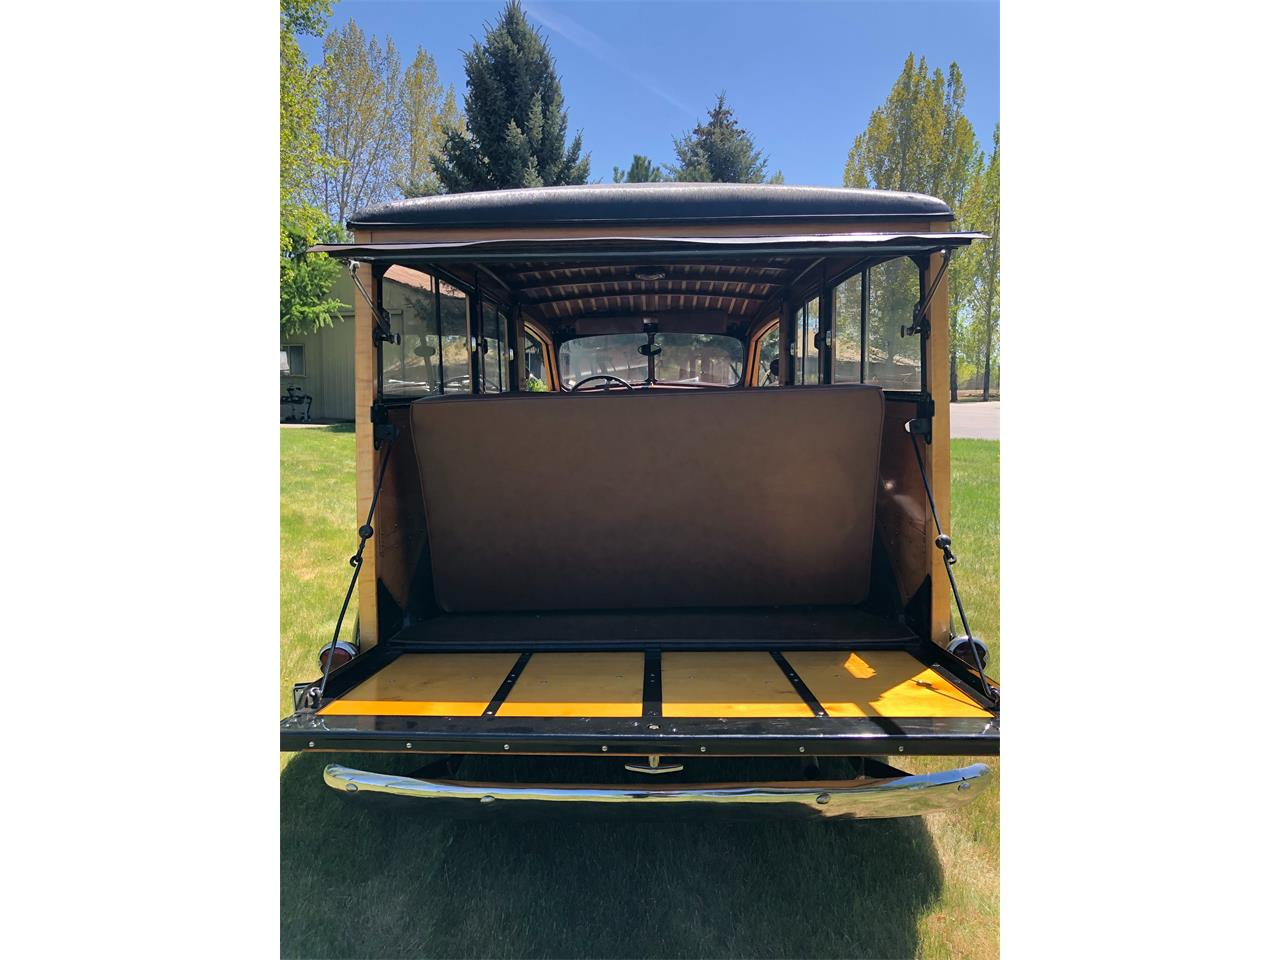 1938 Ford Wagon for sale in Bend, OR – photo 2